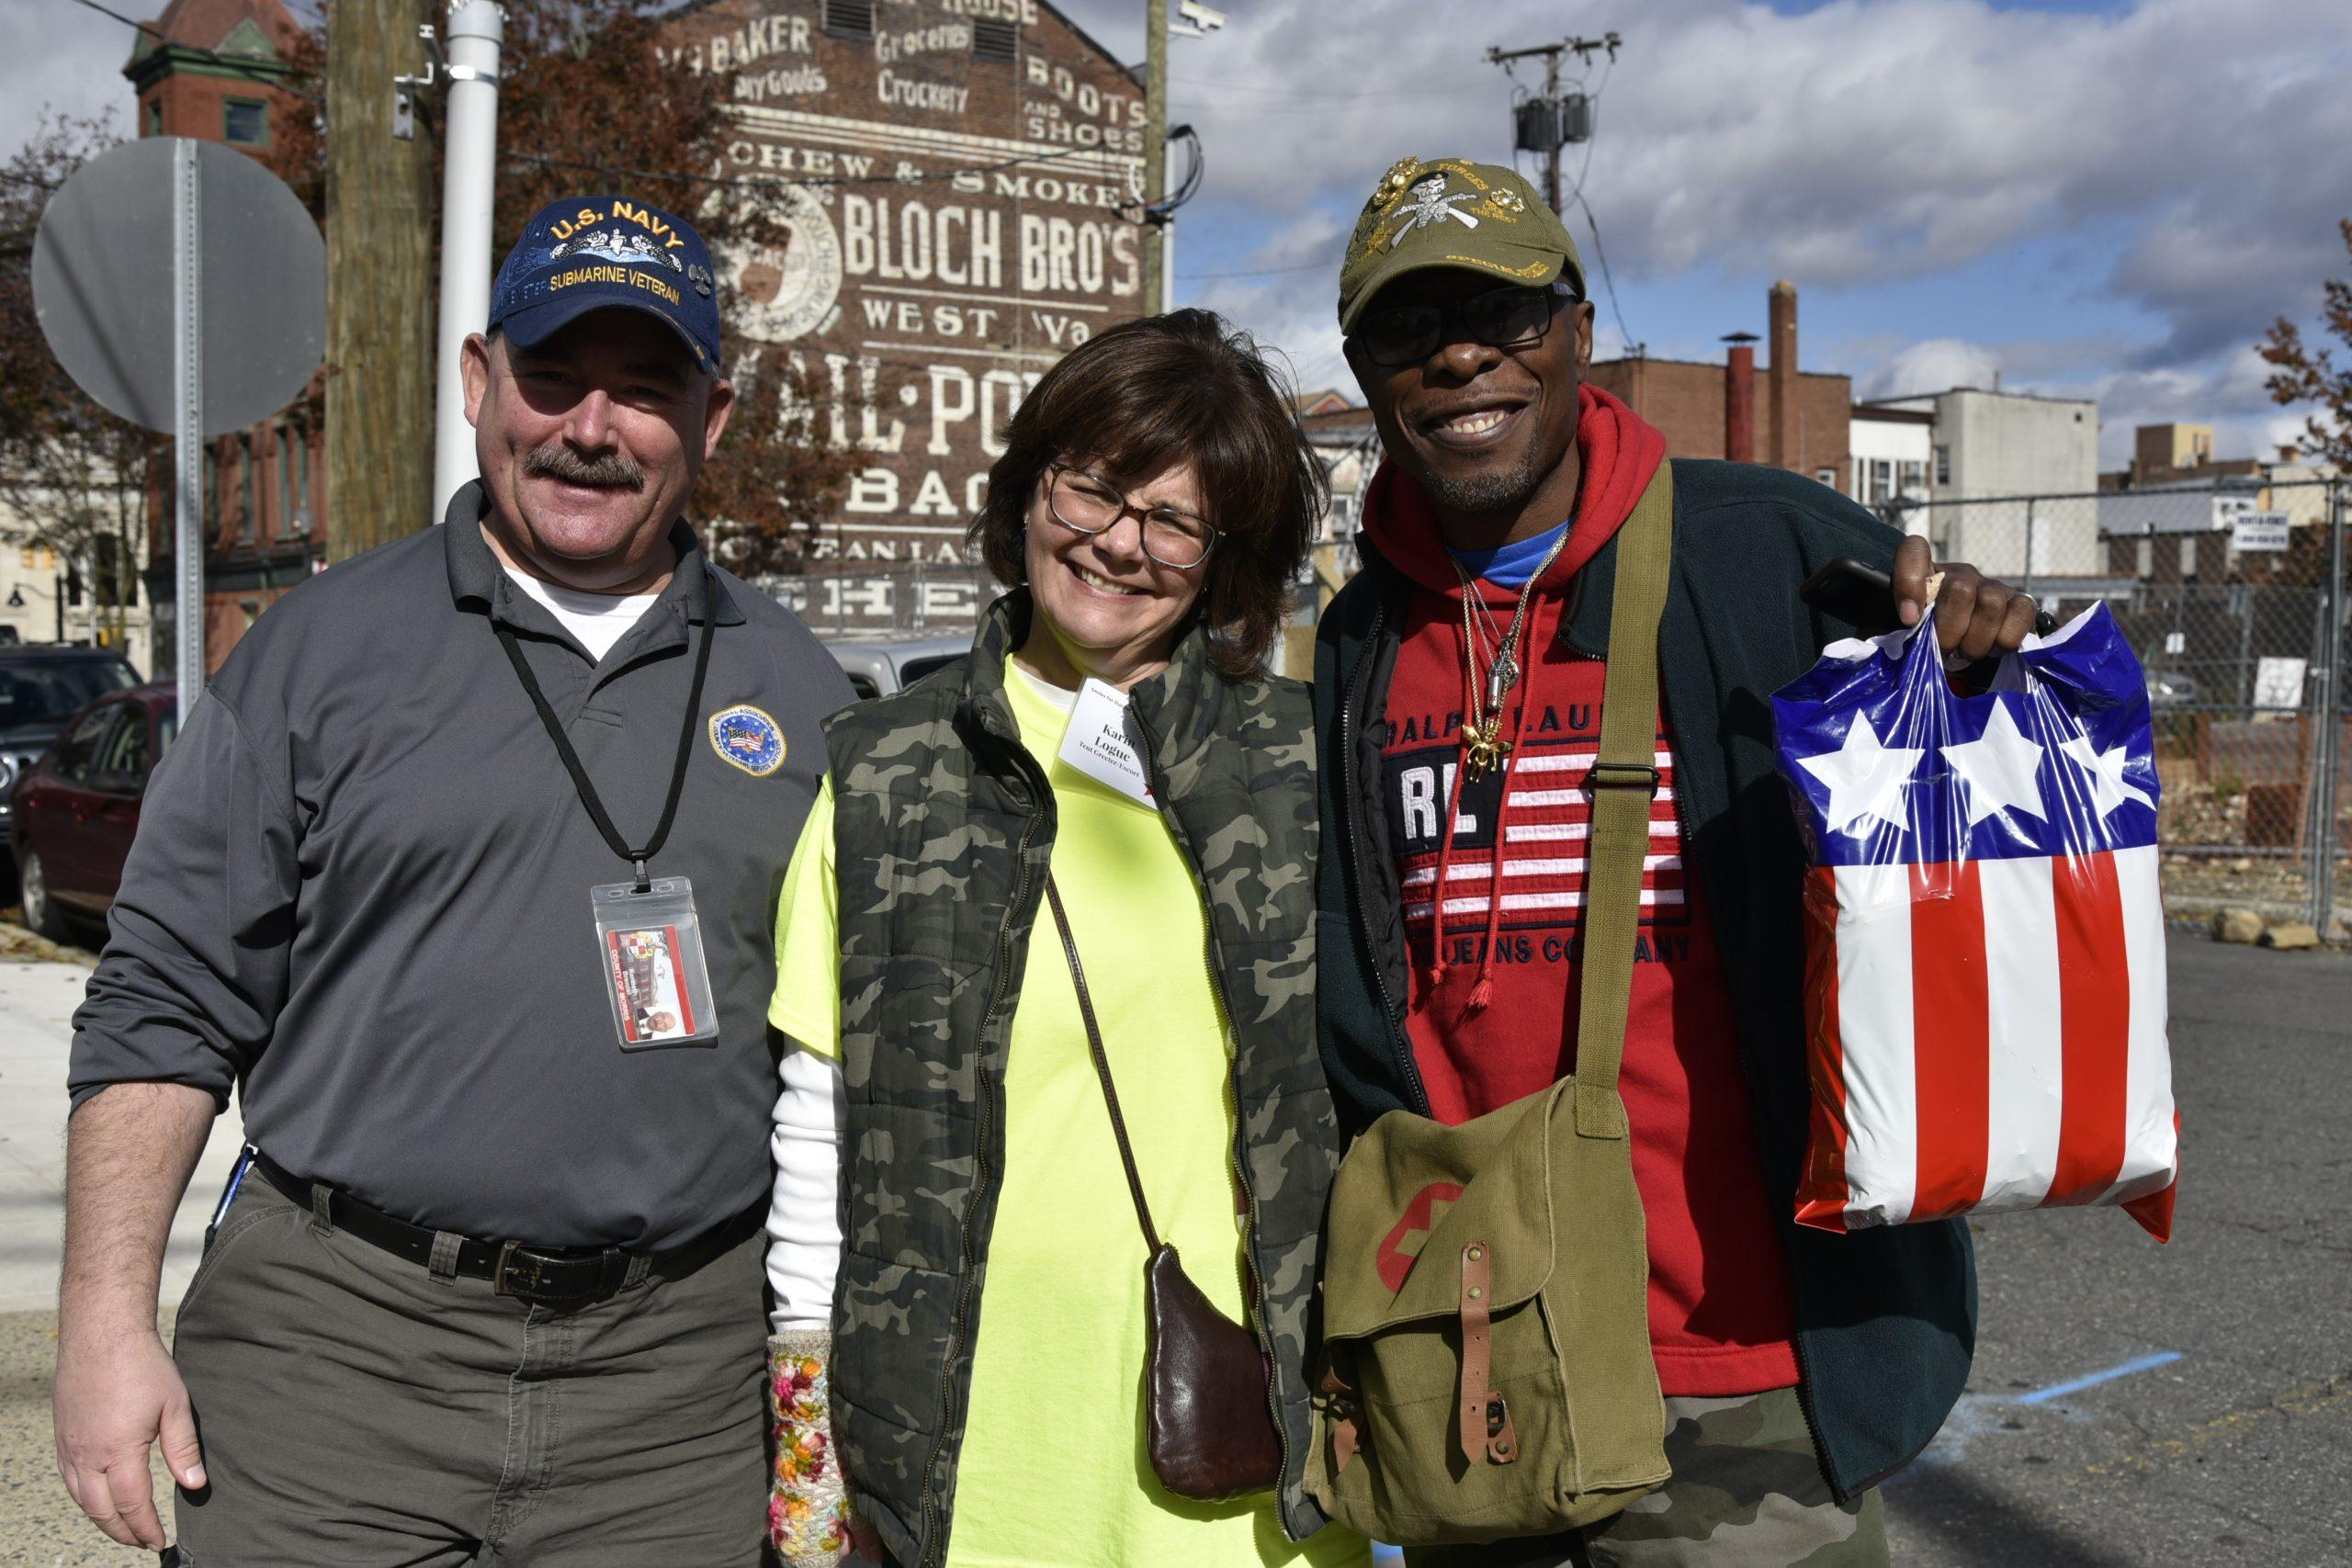 A volunteer at the Smiles for Our Heroes events poses with two veterans.